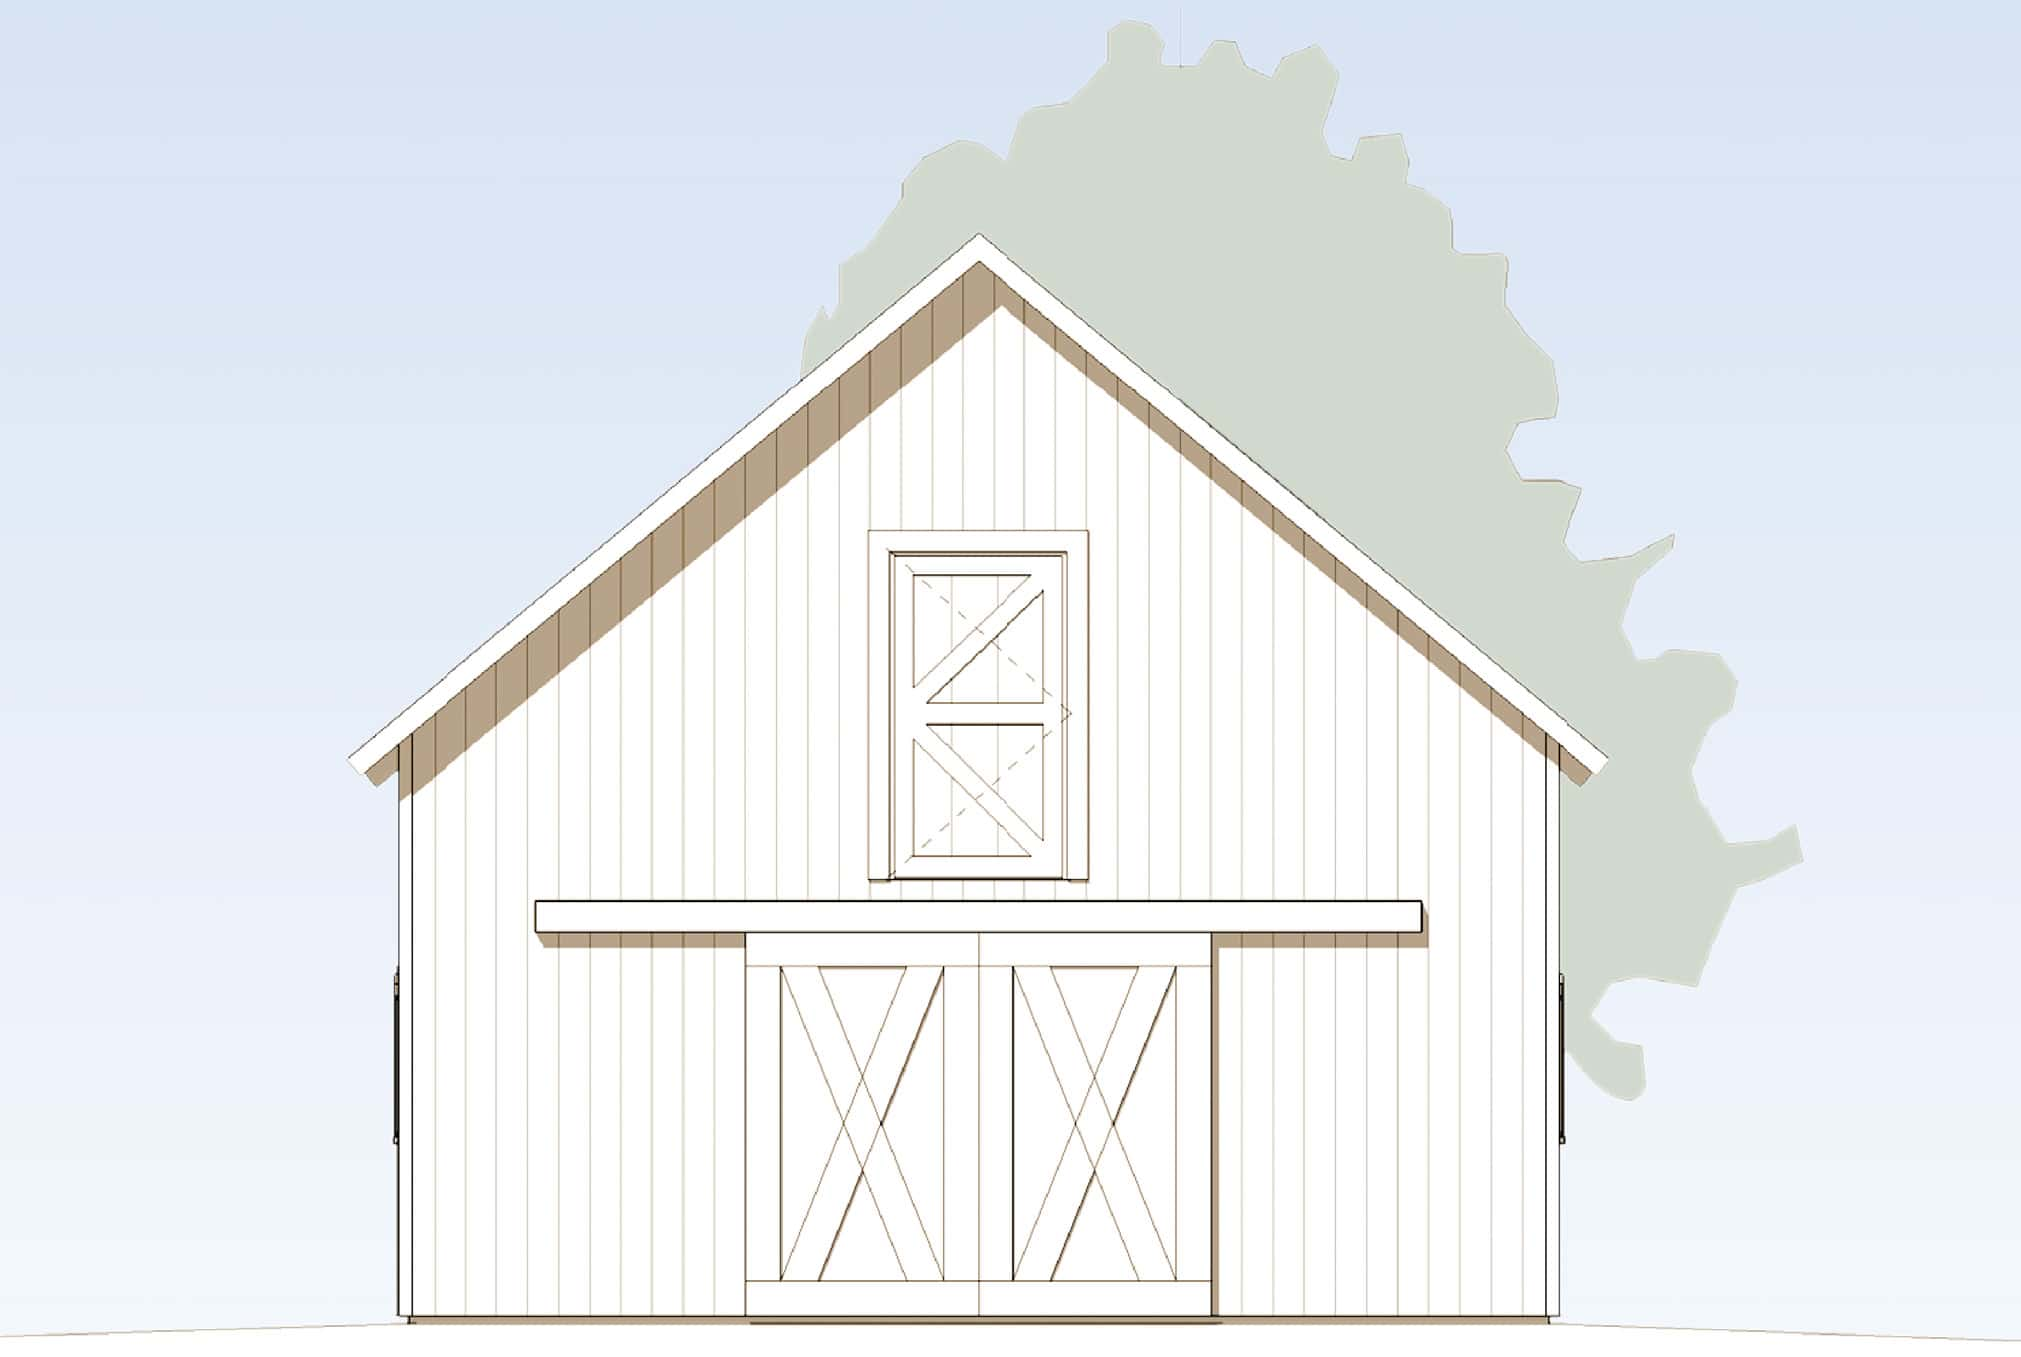 haystack-front-elevation.jpg